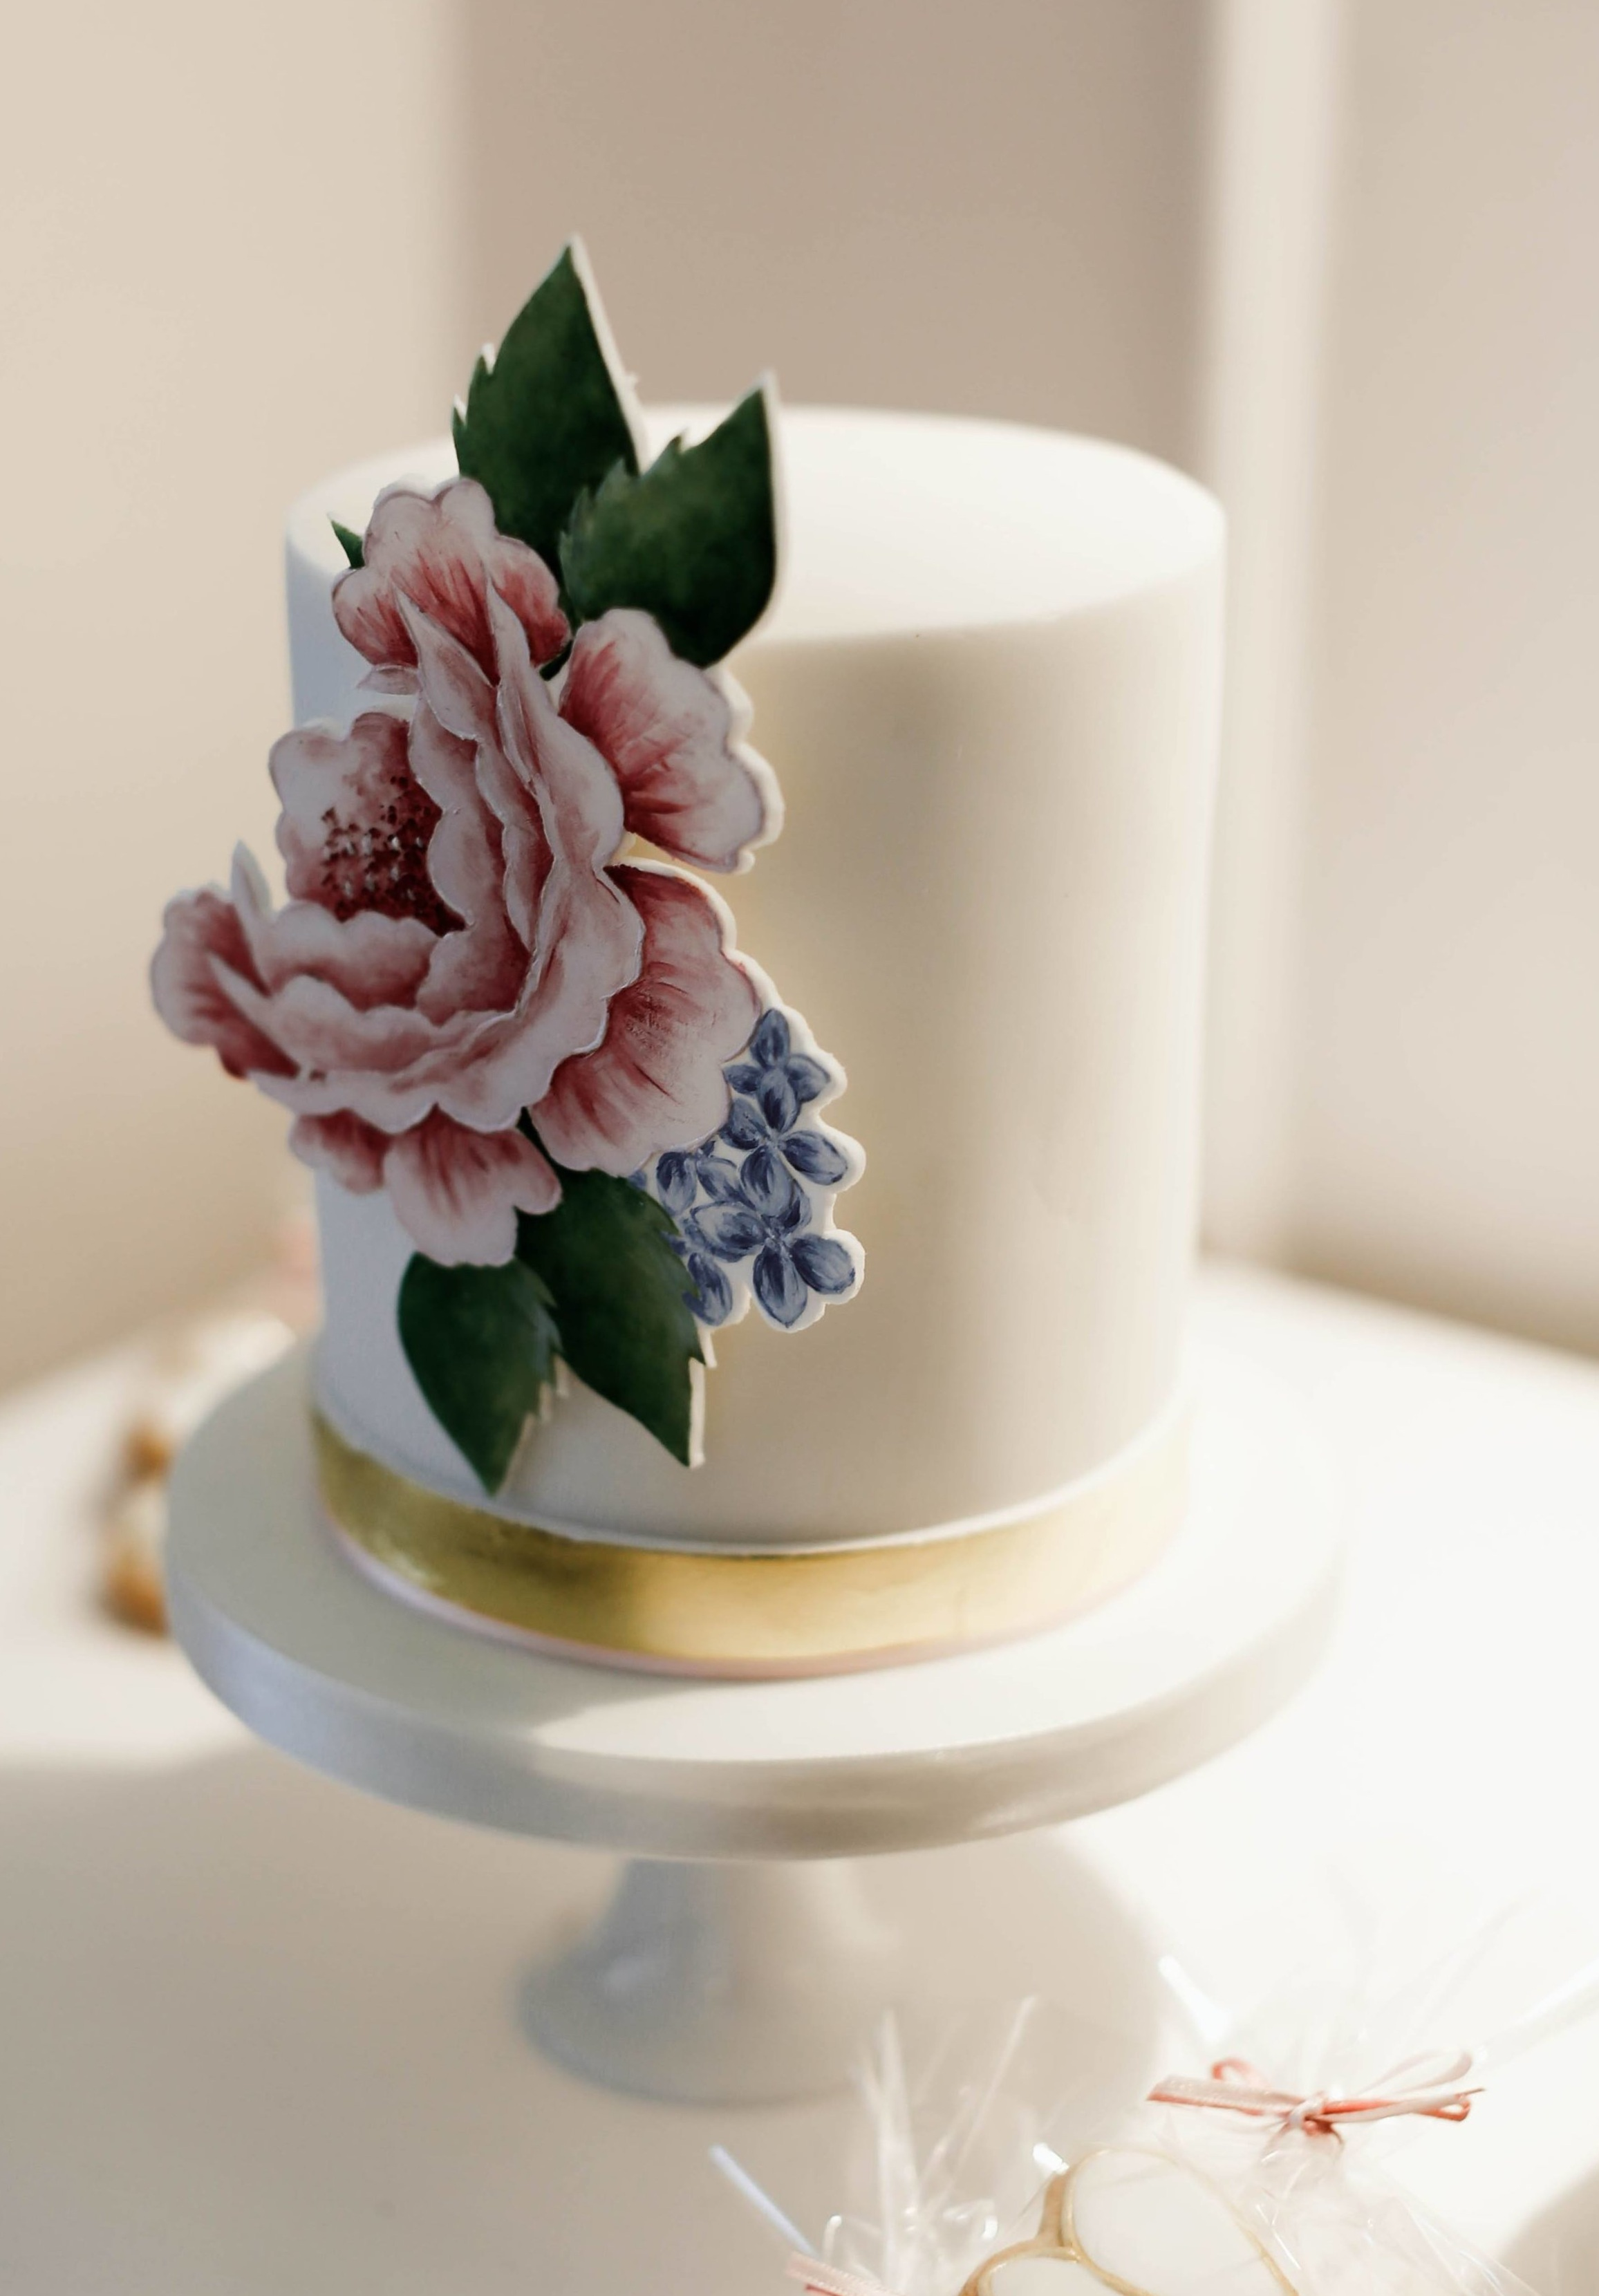 MINI ROSE CAKE  A mini cake with an edible gold leaf band around the base finished with a hand painted rose flat sugar panel.